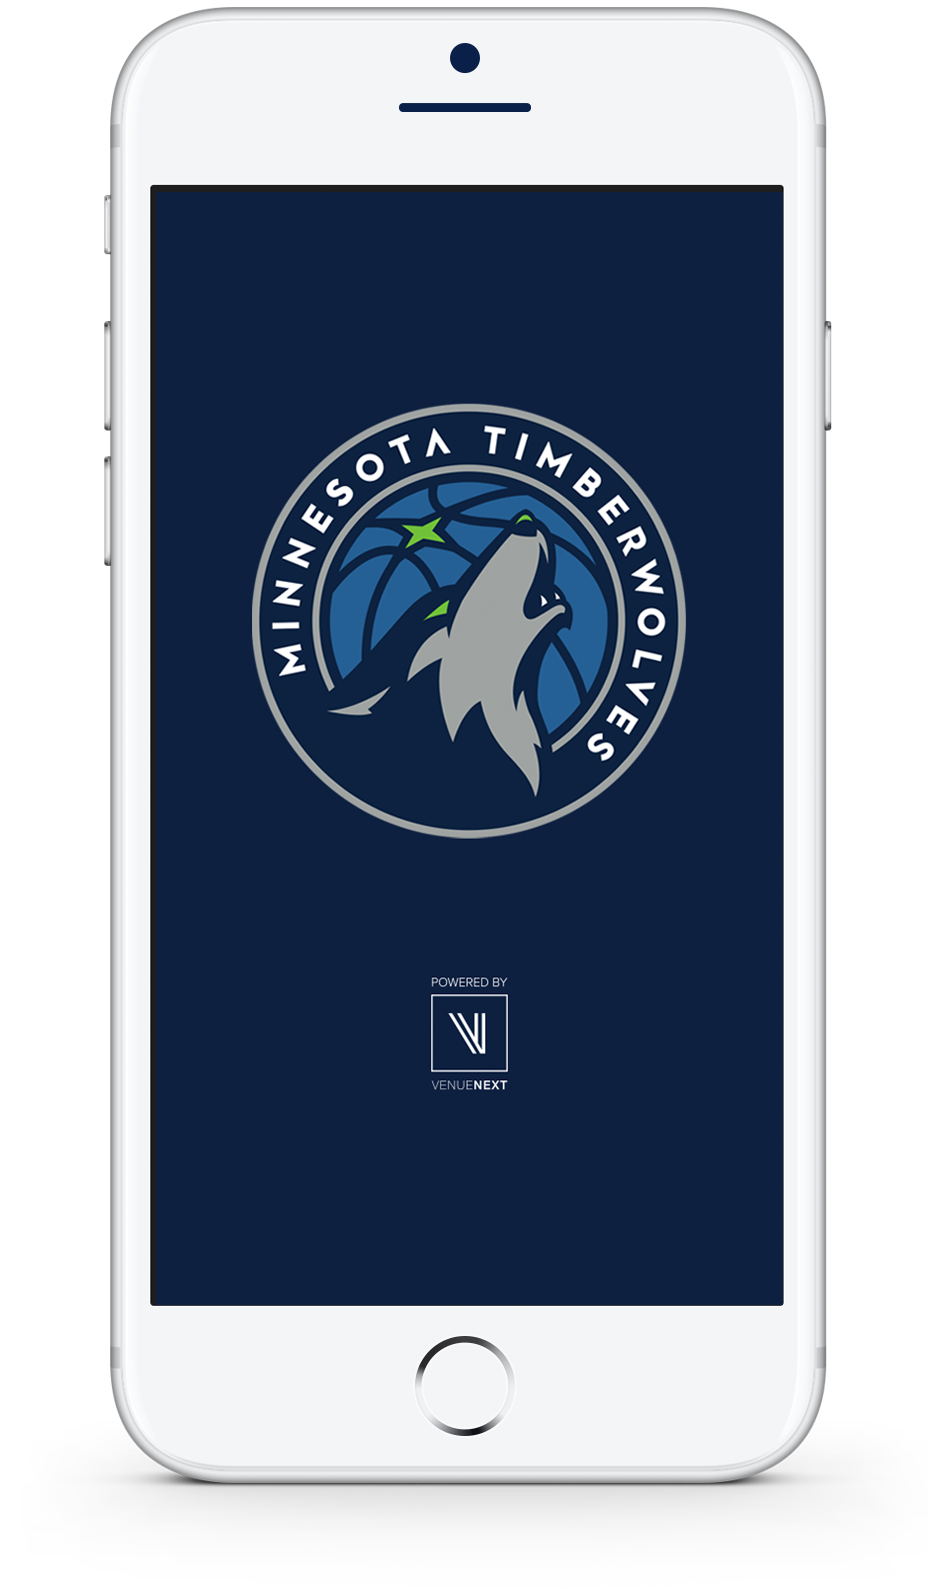 The Official Mobile App of the Minnesota Timberwolves